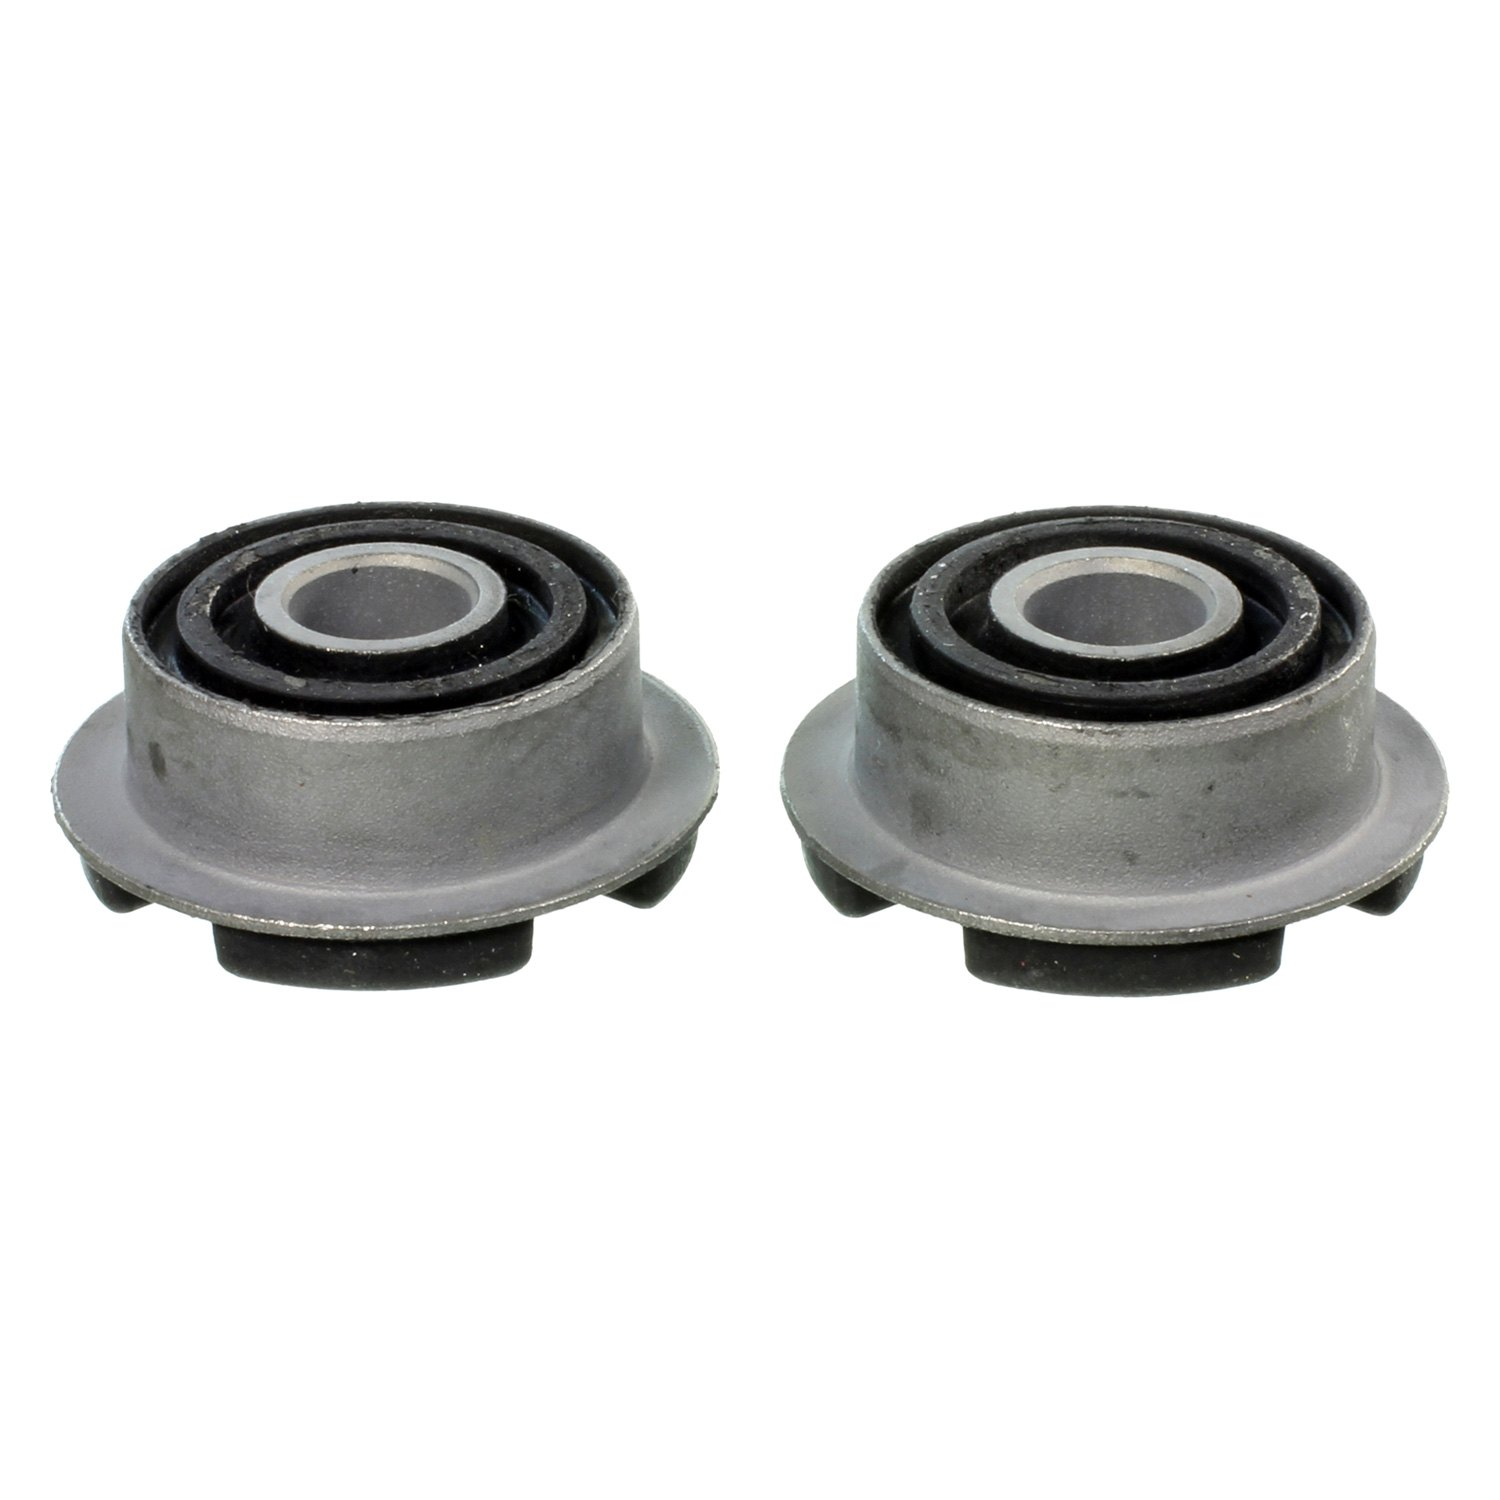 Moog k front lower control arm bushing